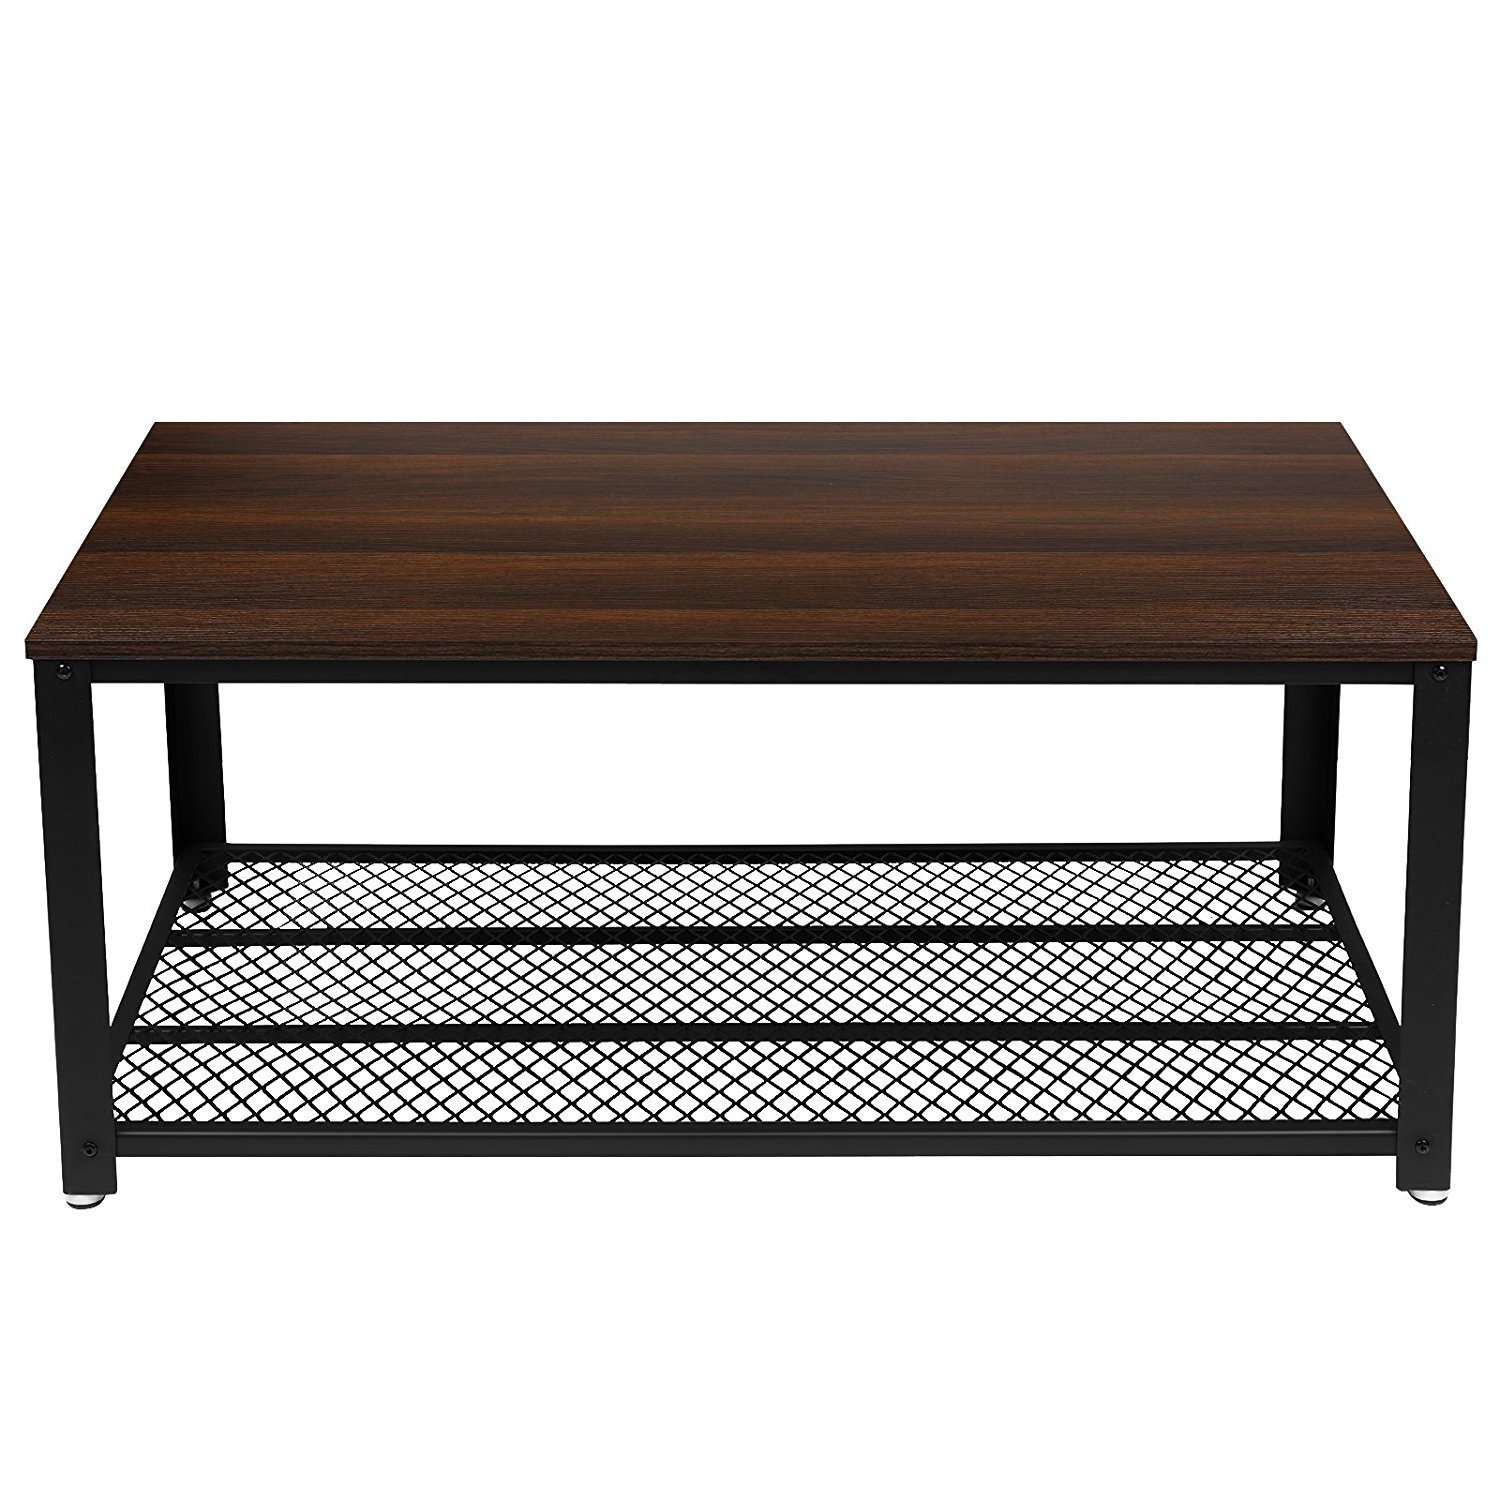 Low Coffee Table With Storage Small Coffee Tables With Storage Home Furniture Design